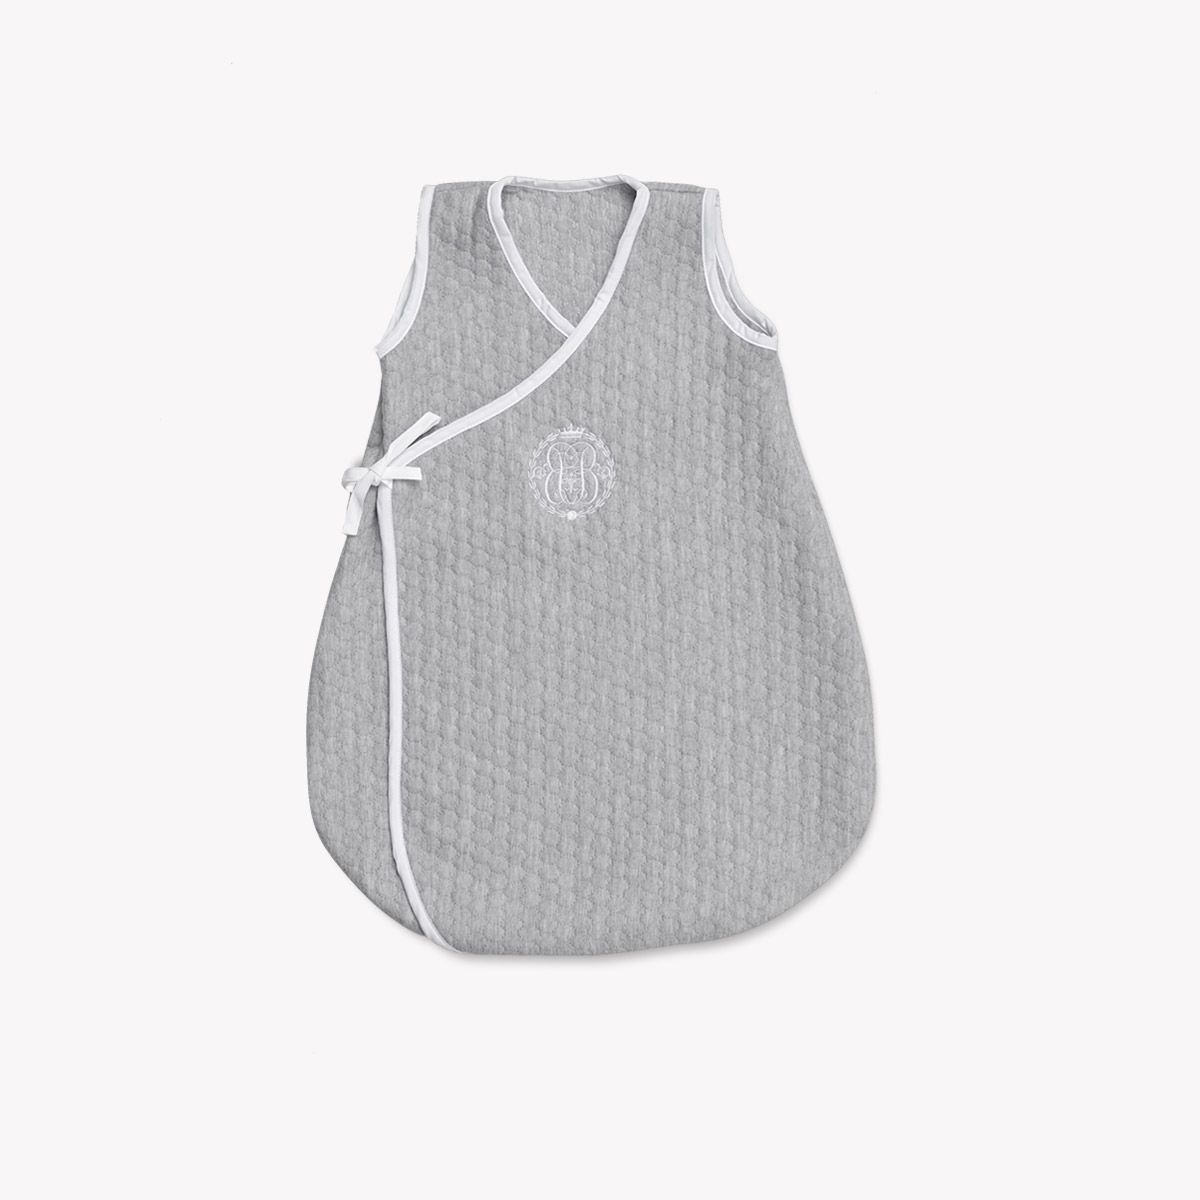 POMME CARAMEL BABY - BIRTH CASUAL CHIC SUMMER SLEEPING BAG PC-CMG-GNE